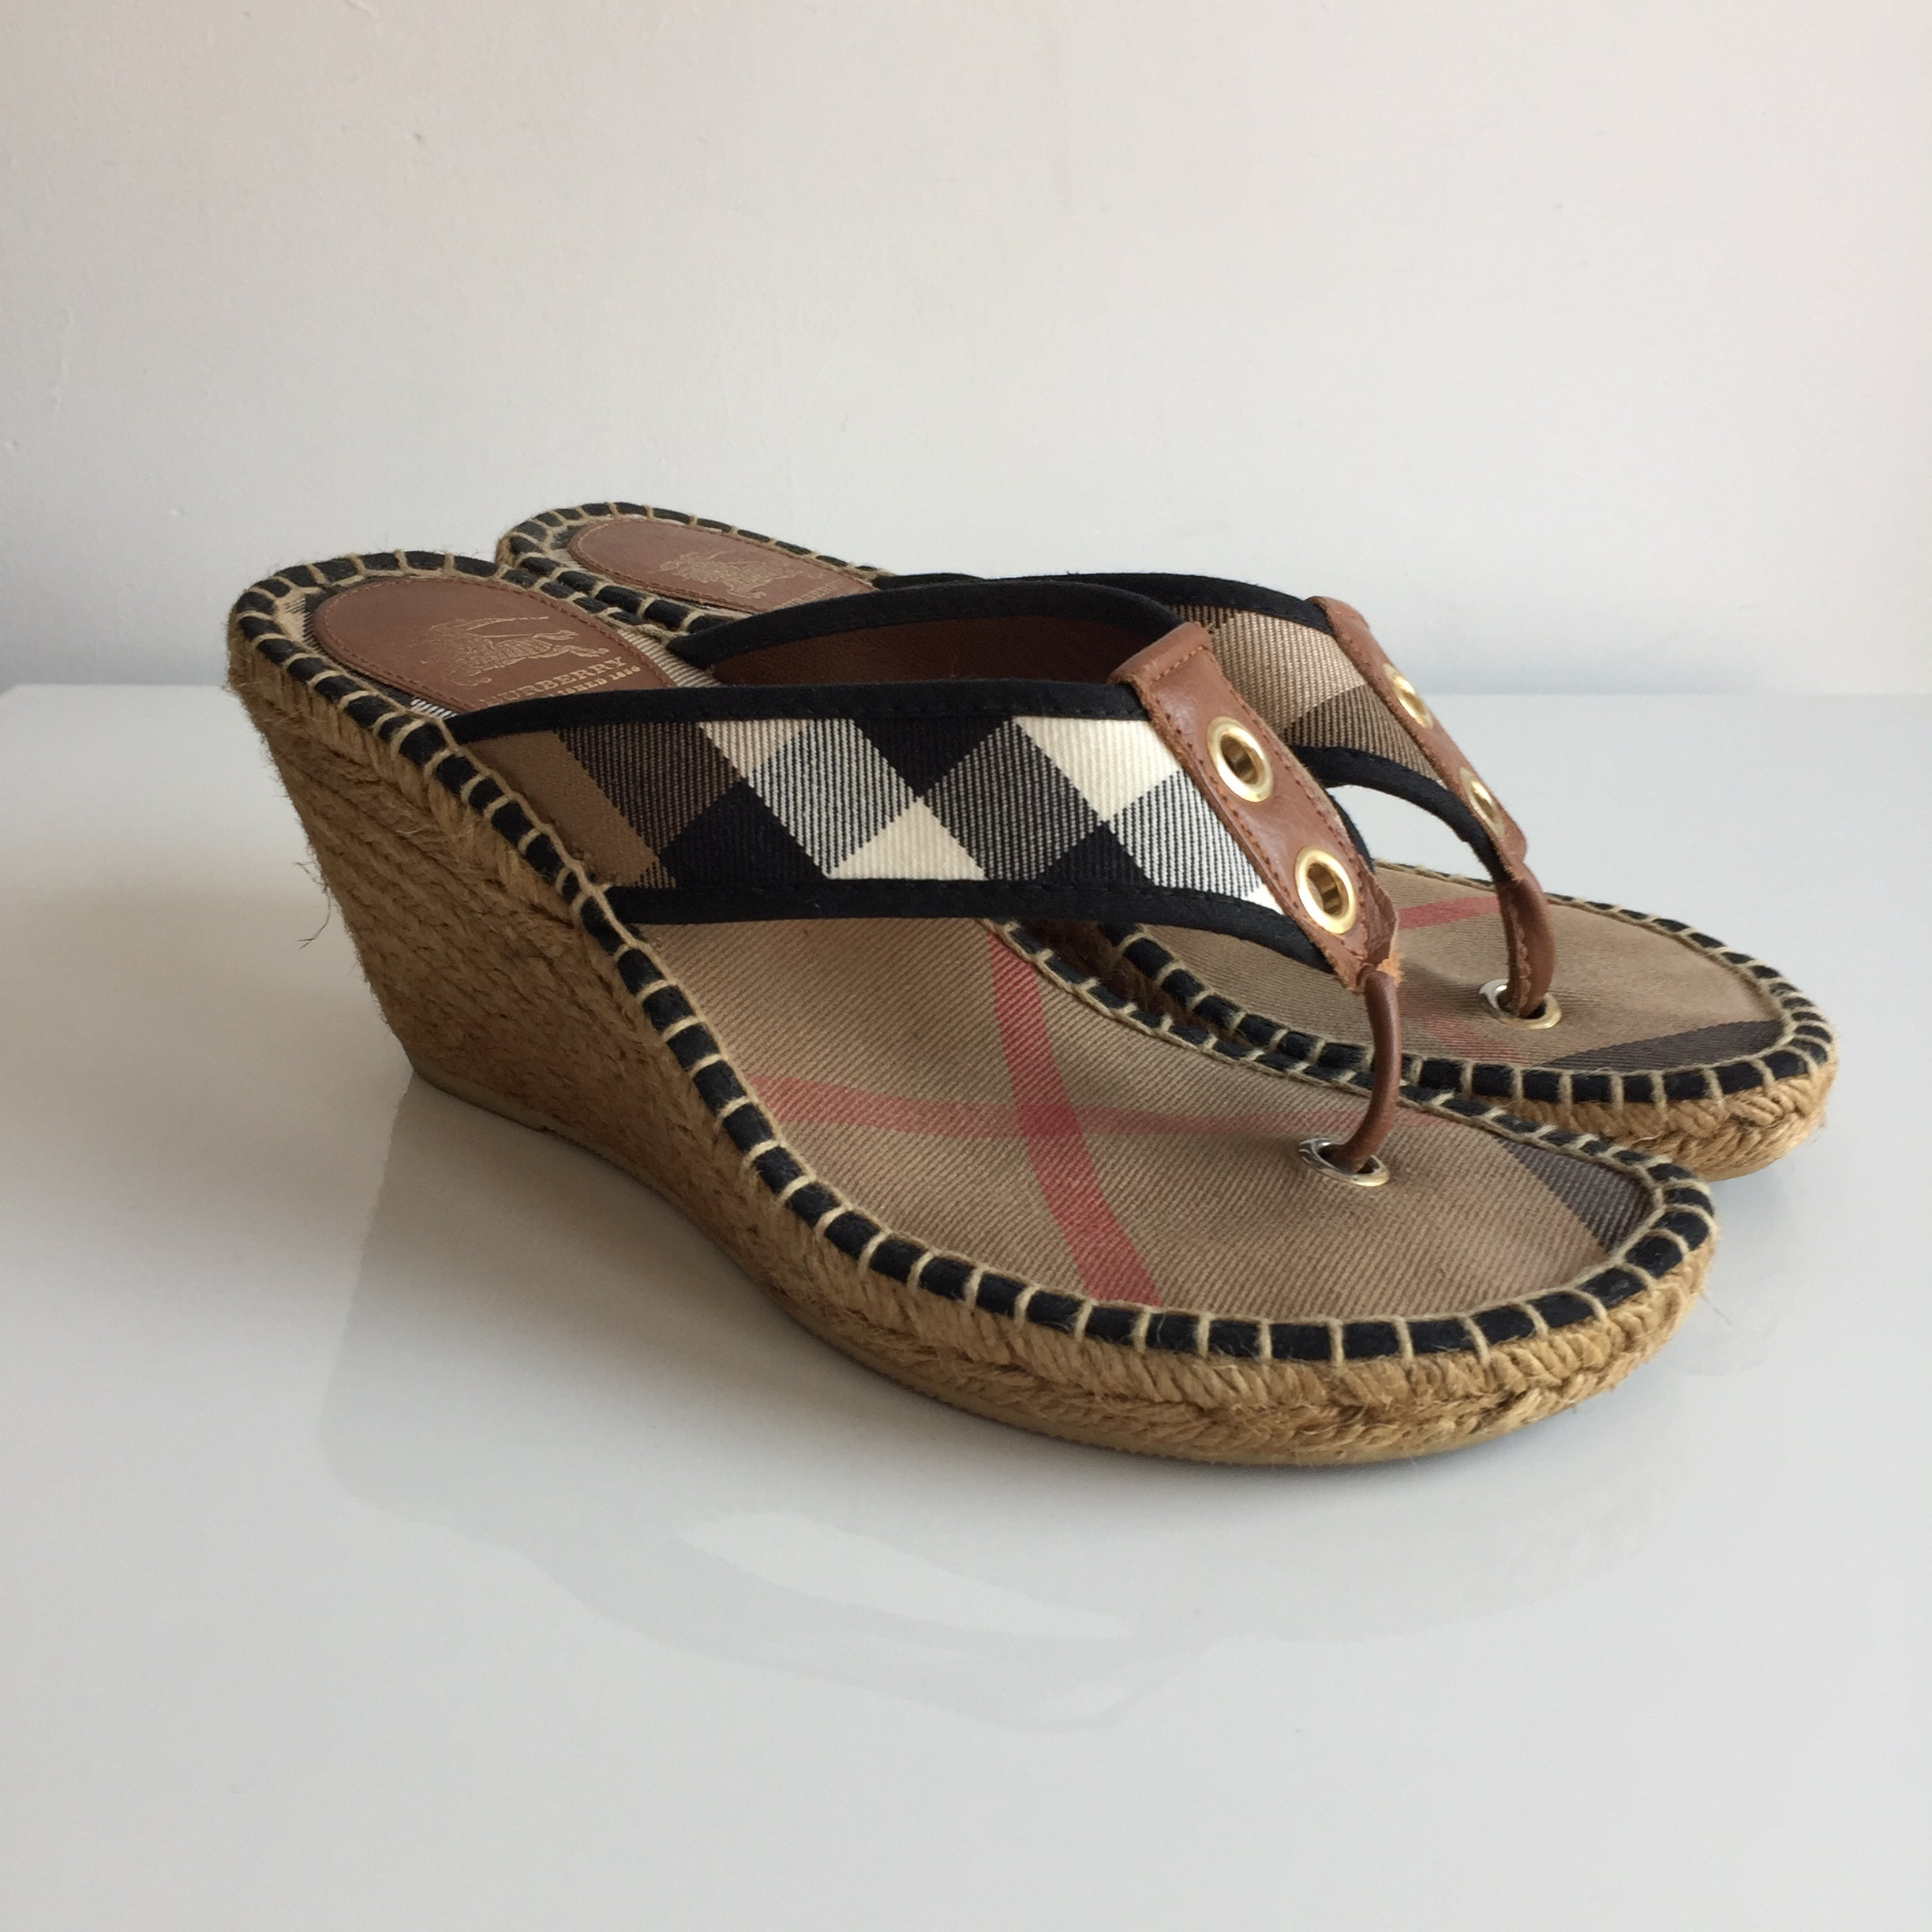 Authentic BURBERRY Thong Espadrilles Size 9